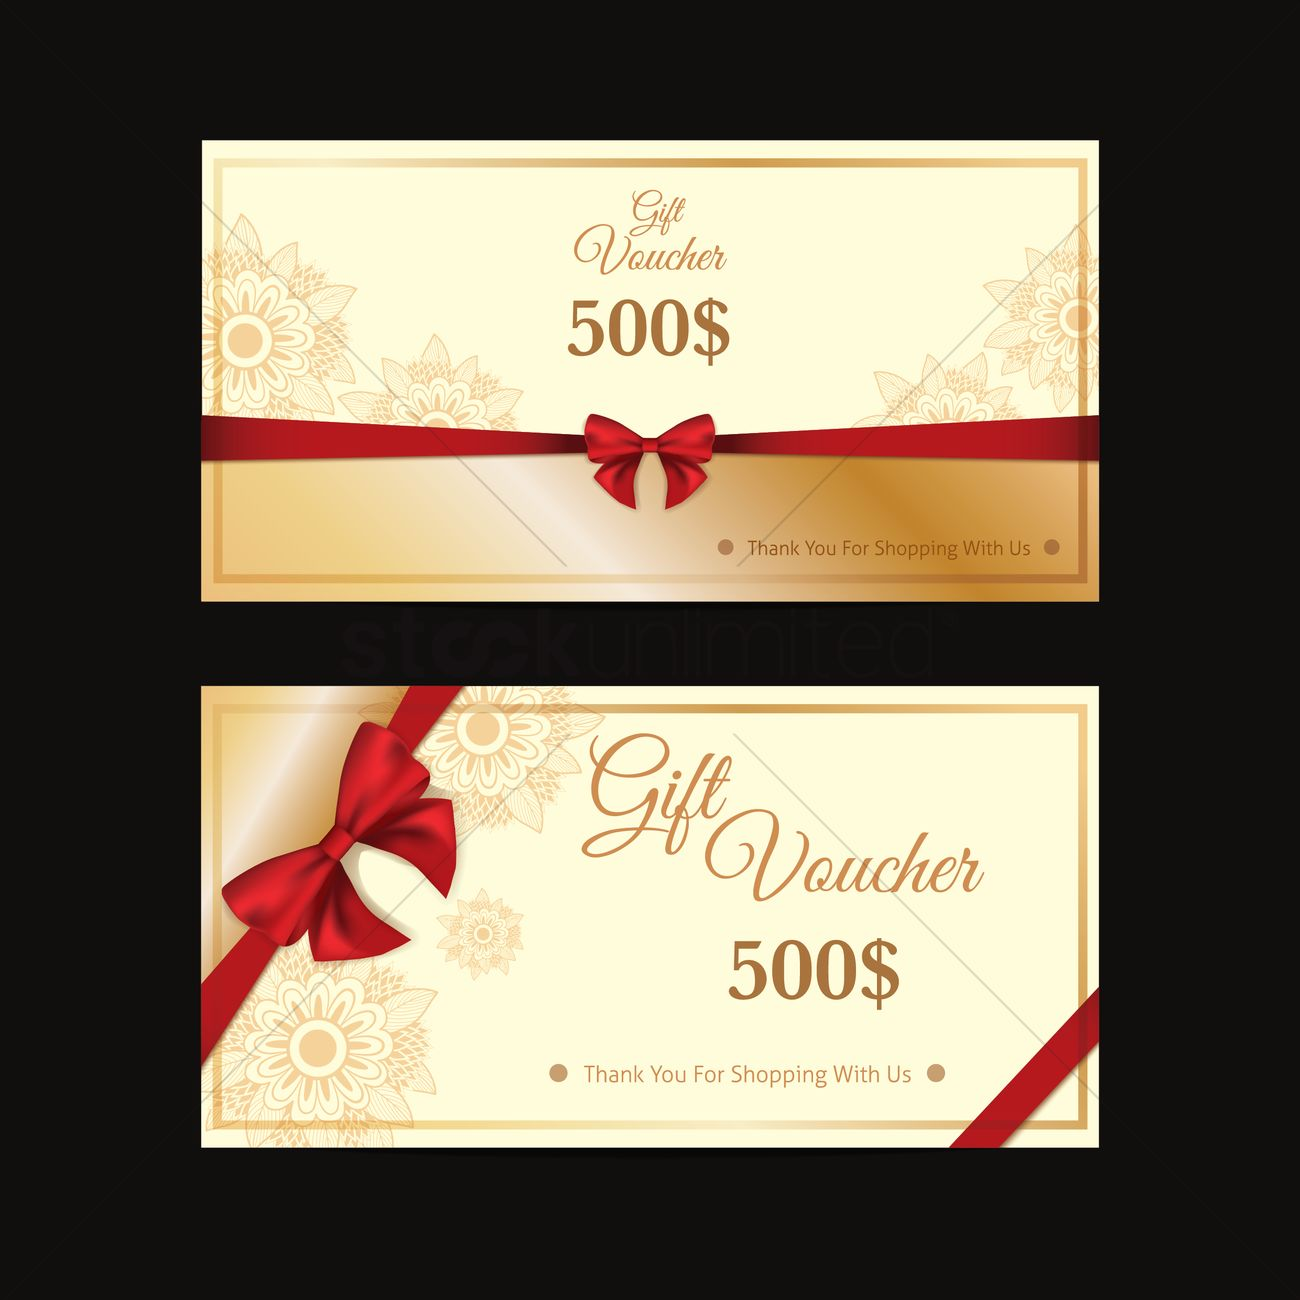 Gift voucher design vector image 1996215 stockunlimited gift voucher design vector graphic alramifo Images